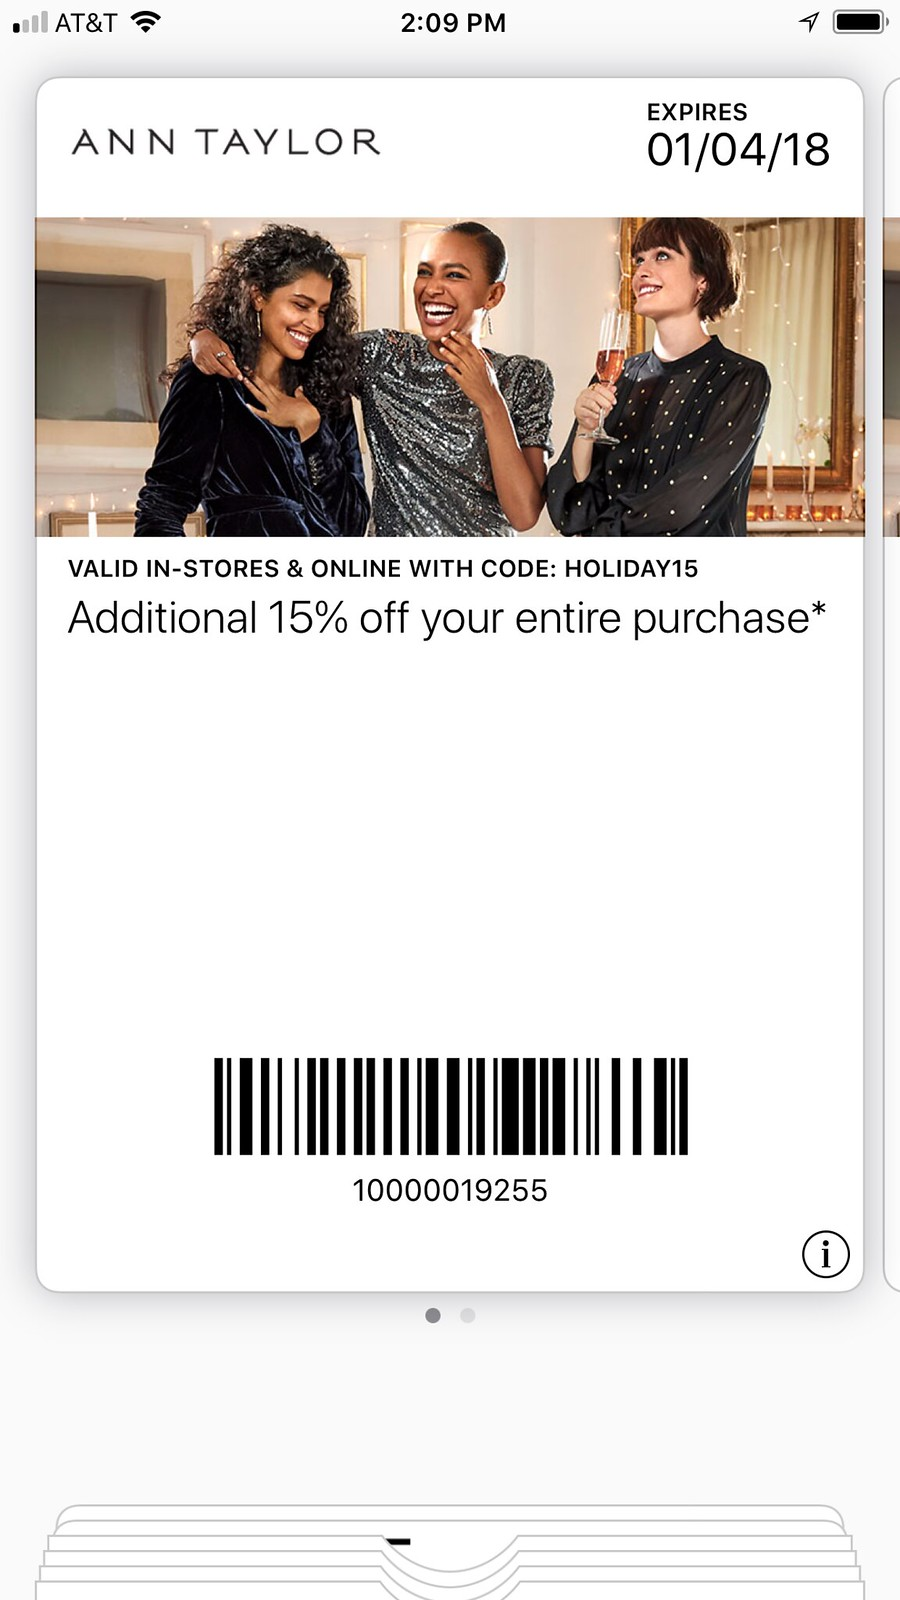 Ann Taylor Holiday Savings for non-cardmembers - Valid through January 4, 2018